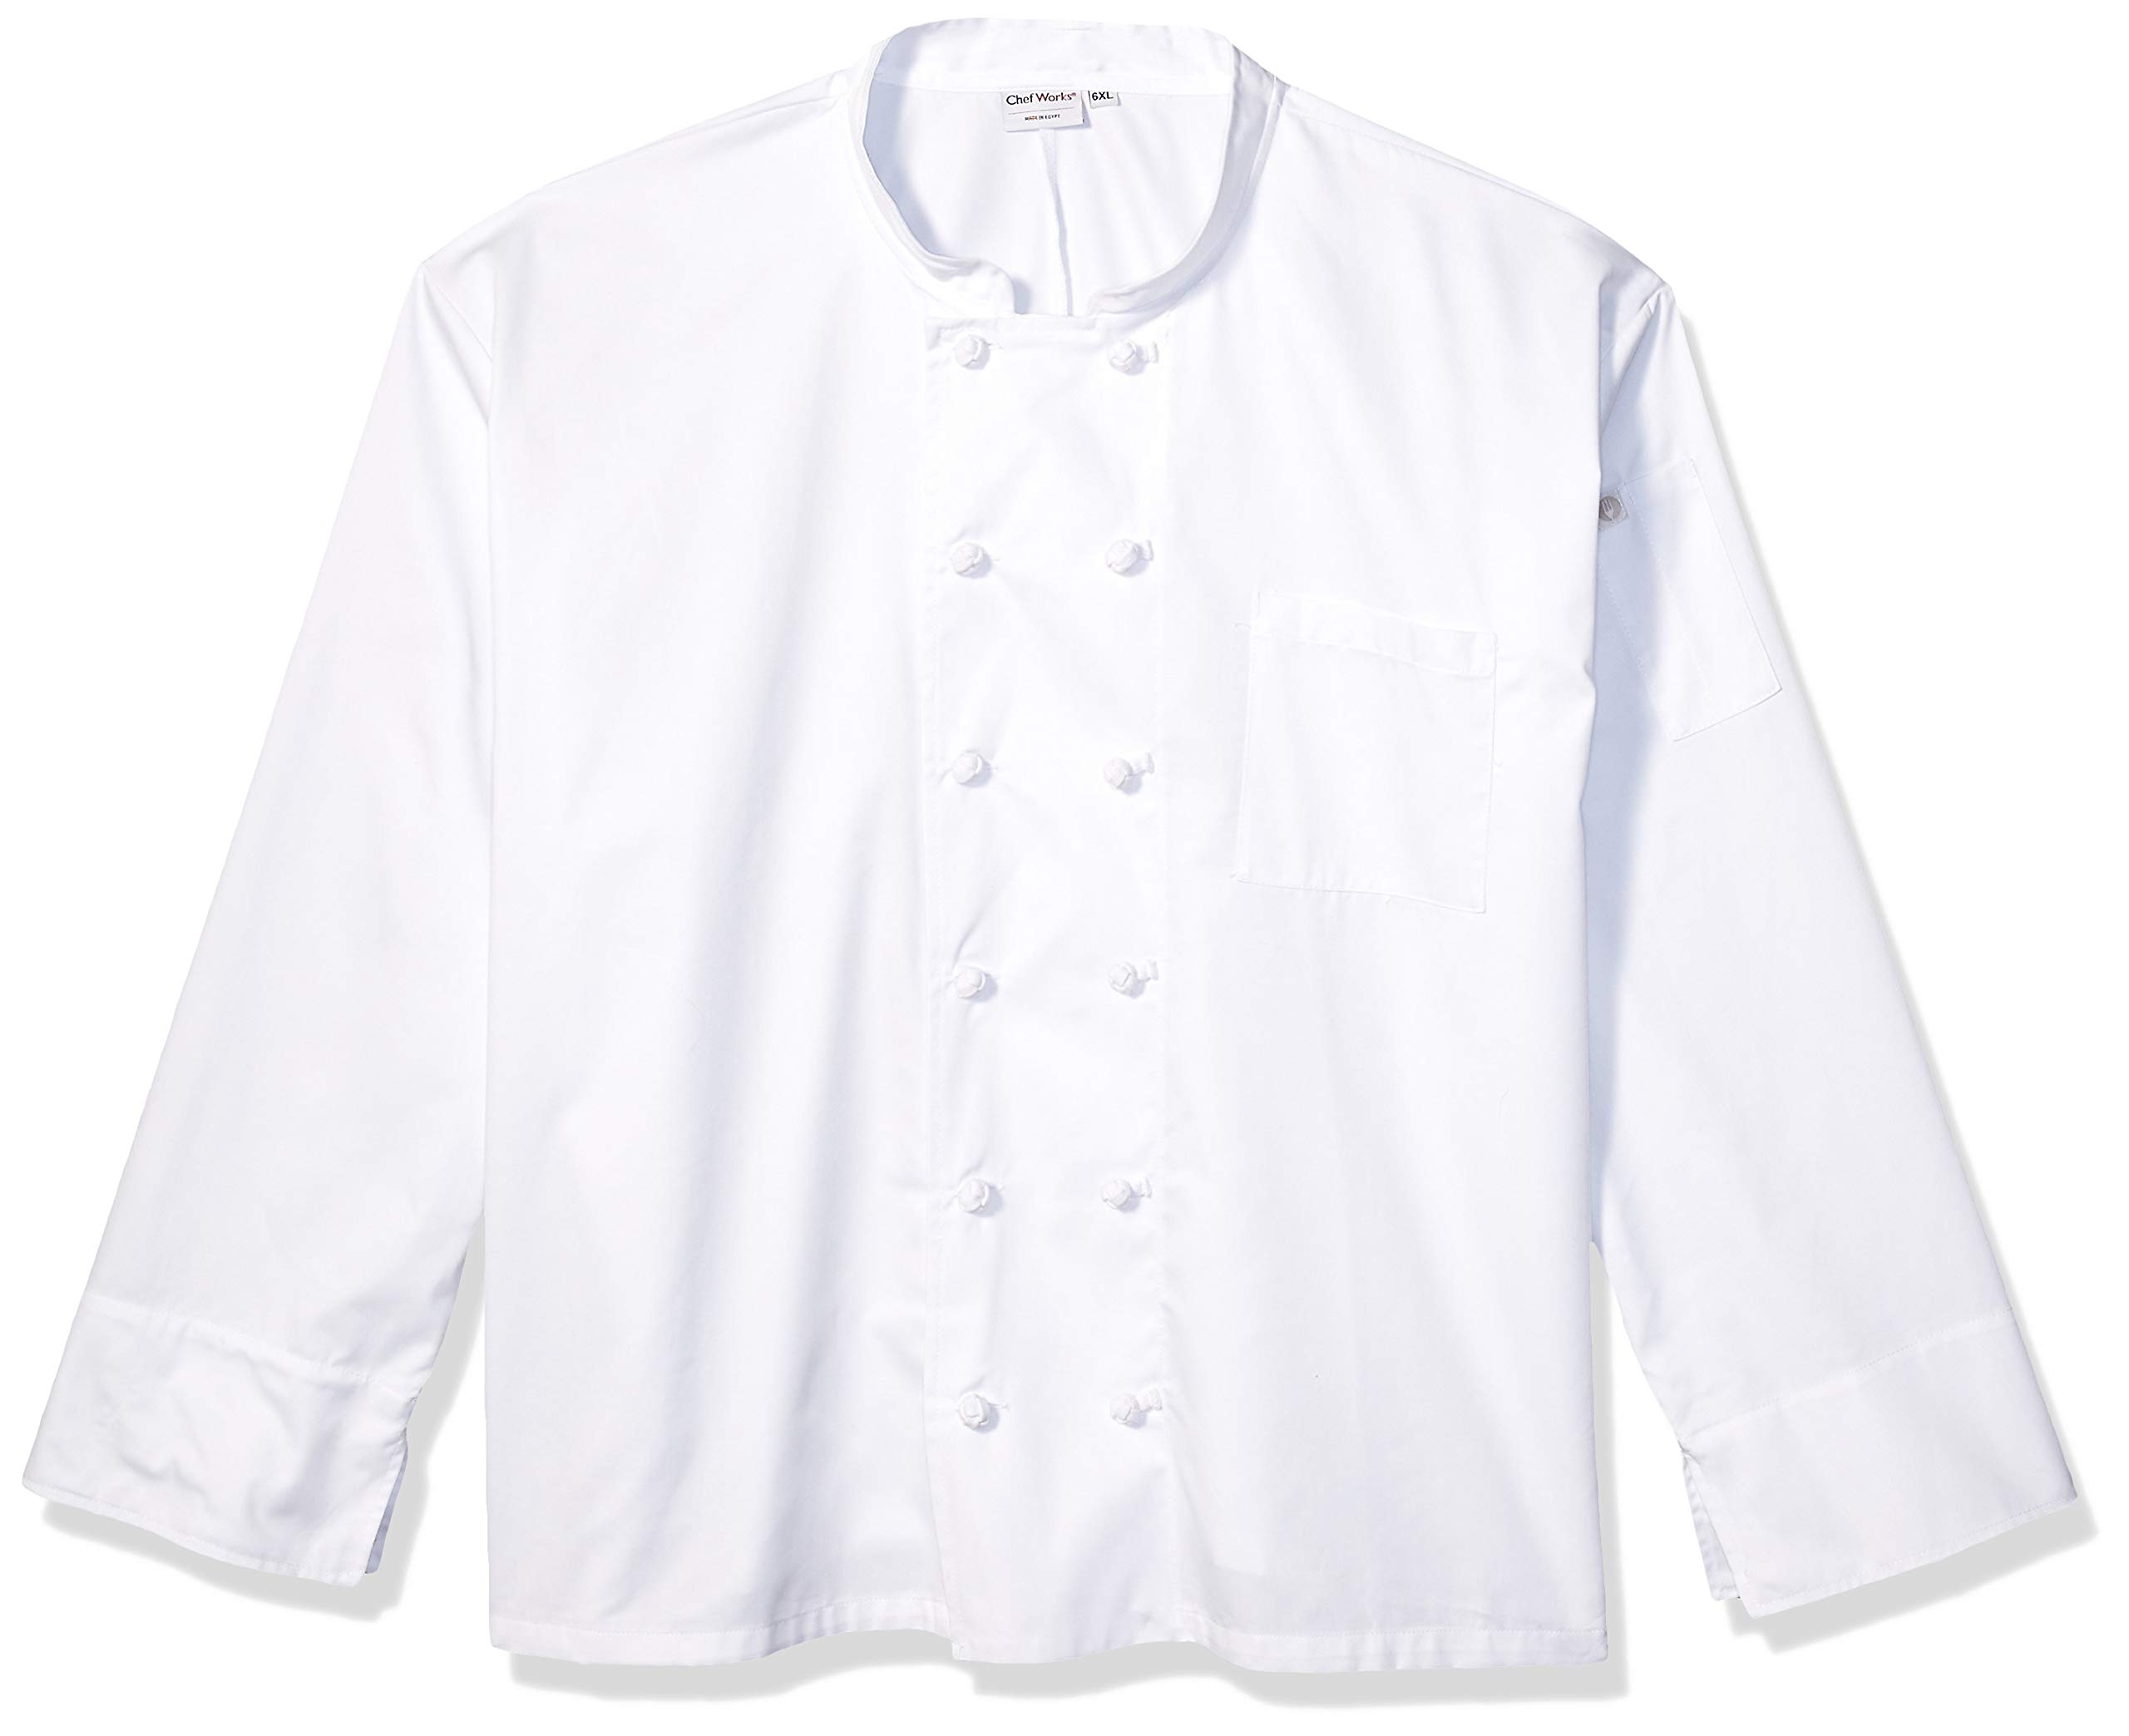 Chef Works Men's Bordeaux Chef Coat, White, 4X-Large by Chef Works